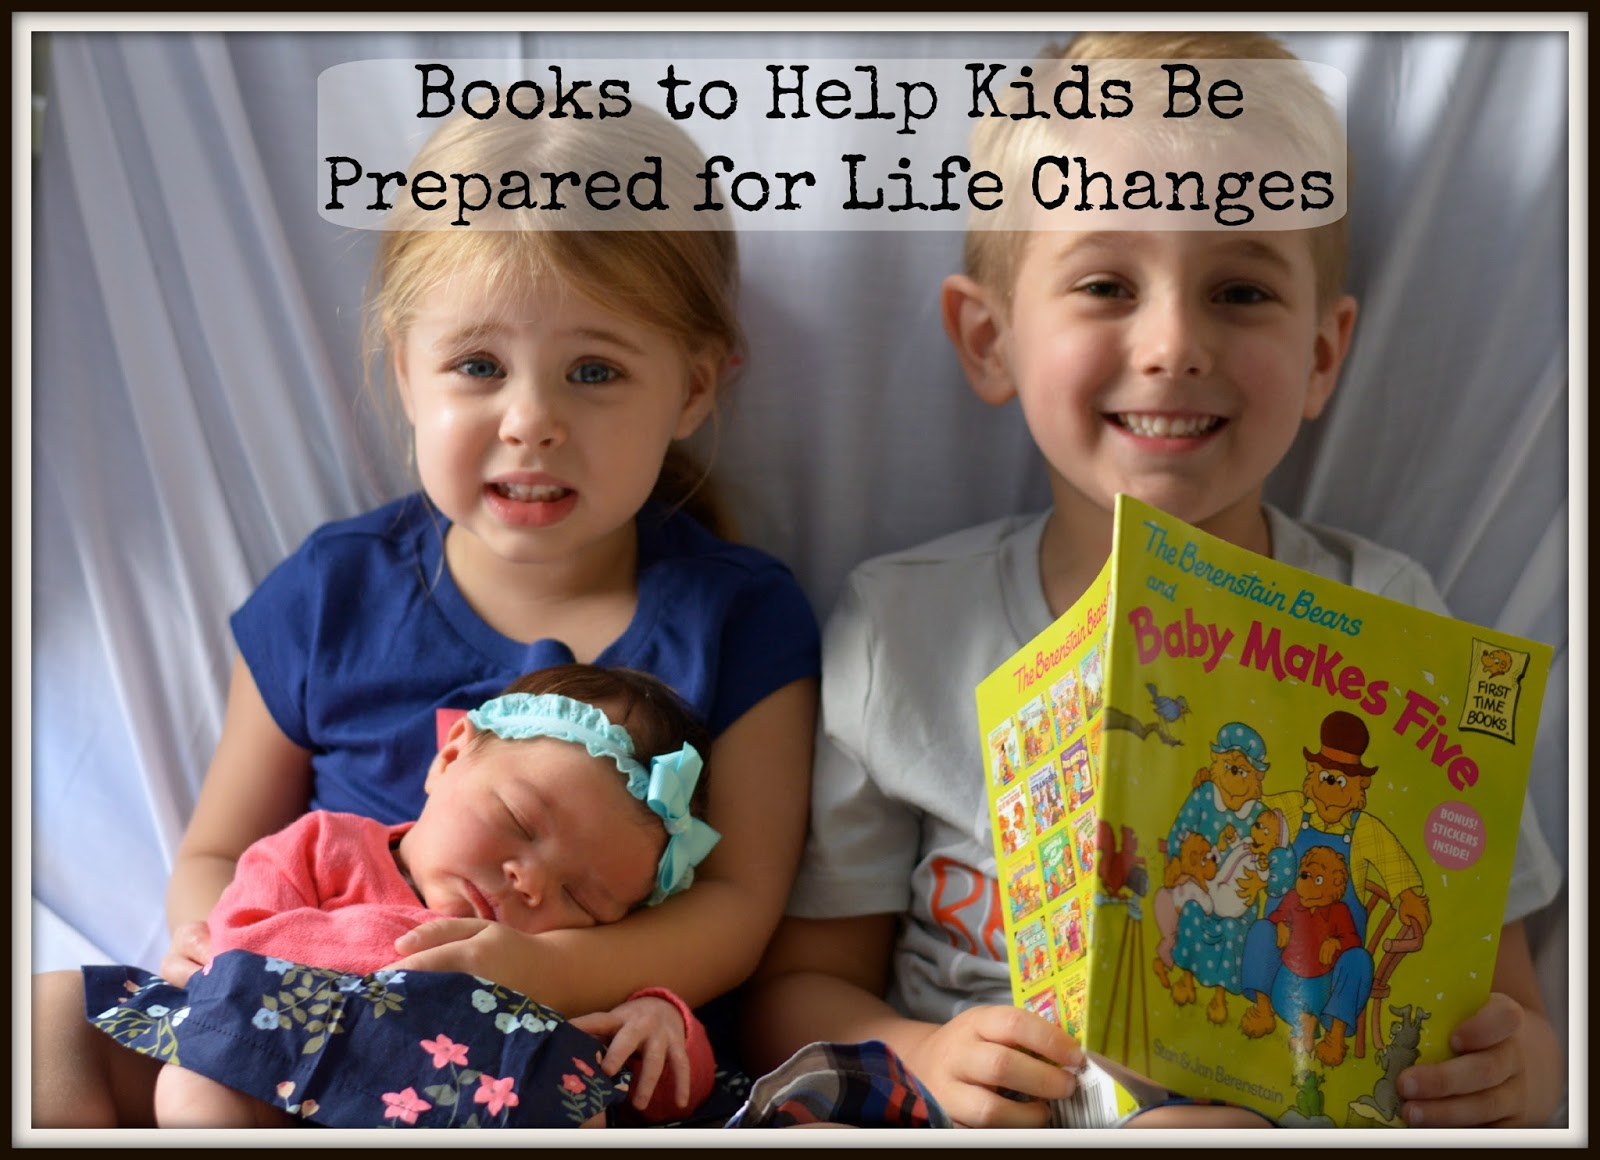 Books to Help Prepare Kids for Life Changes